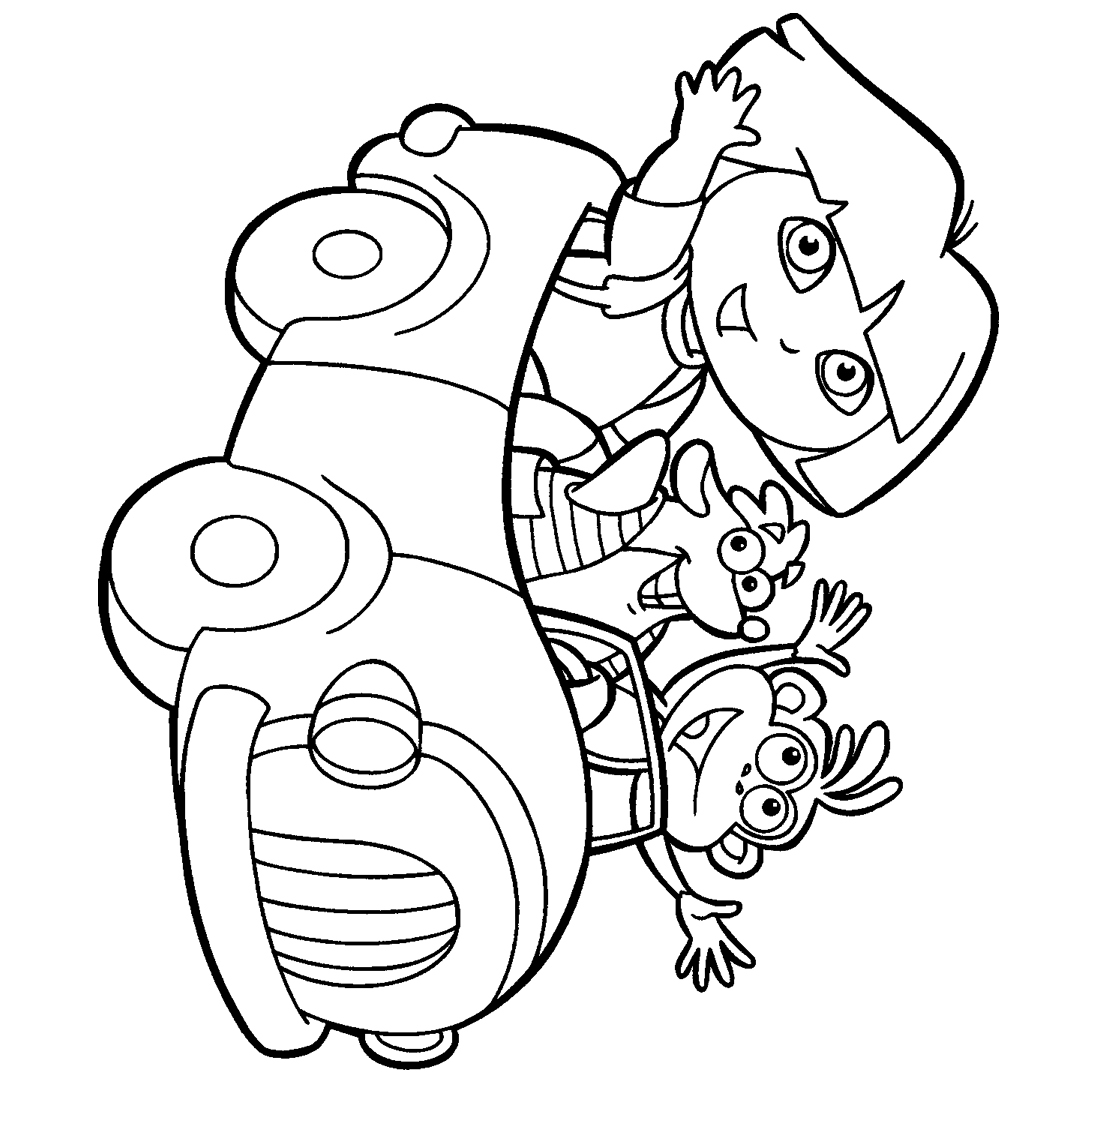 Download Dora The Explorer Coloring Pages 5 Print